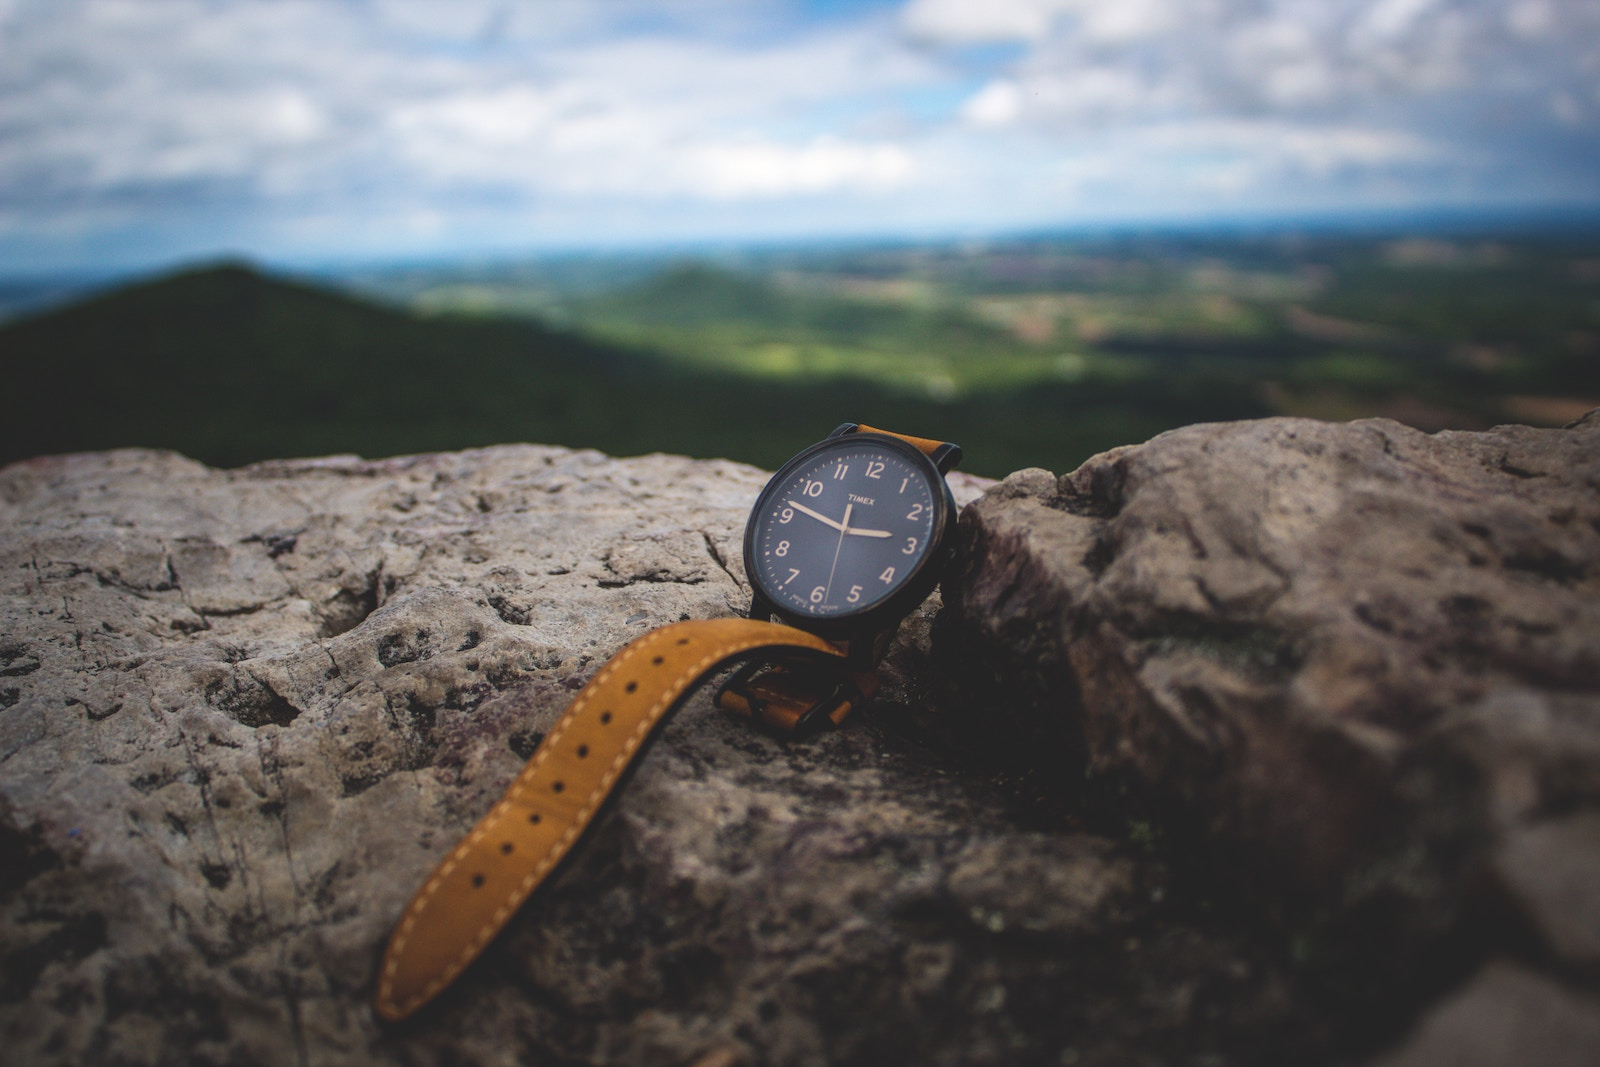 A watch on the mountain overlooking a landscape.